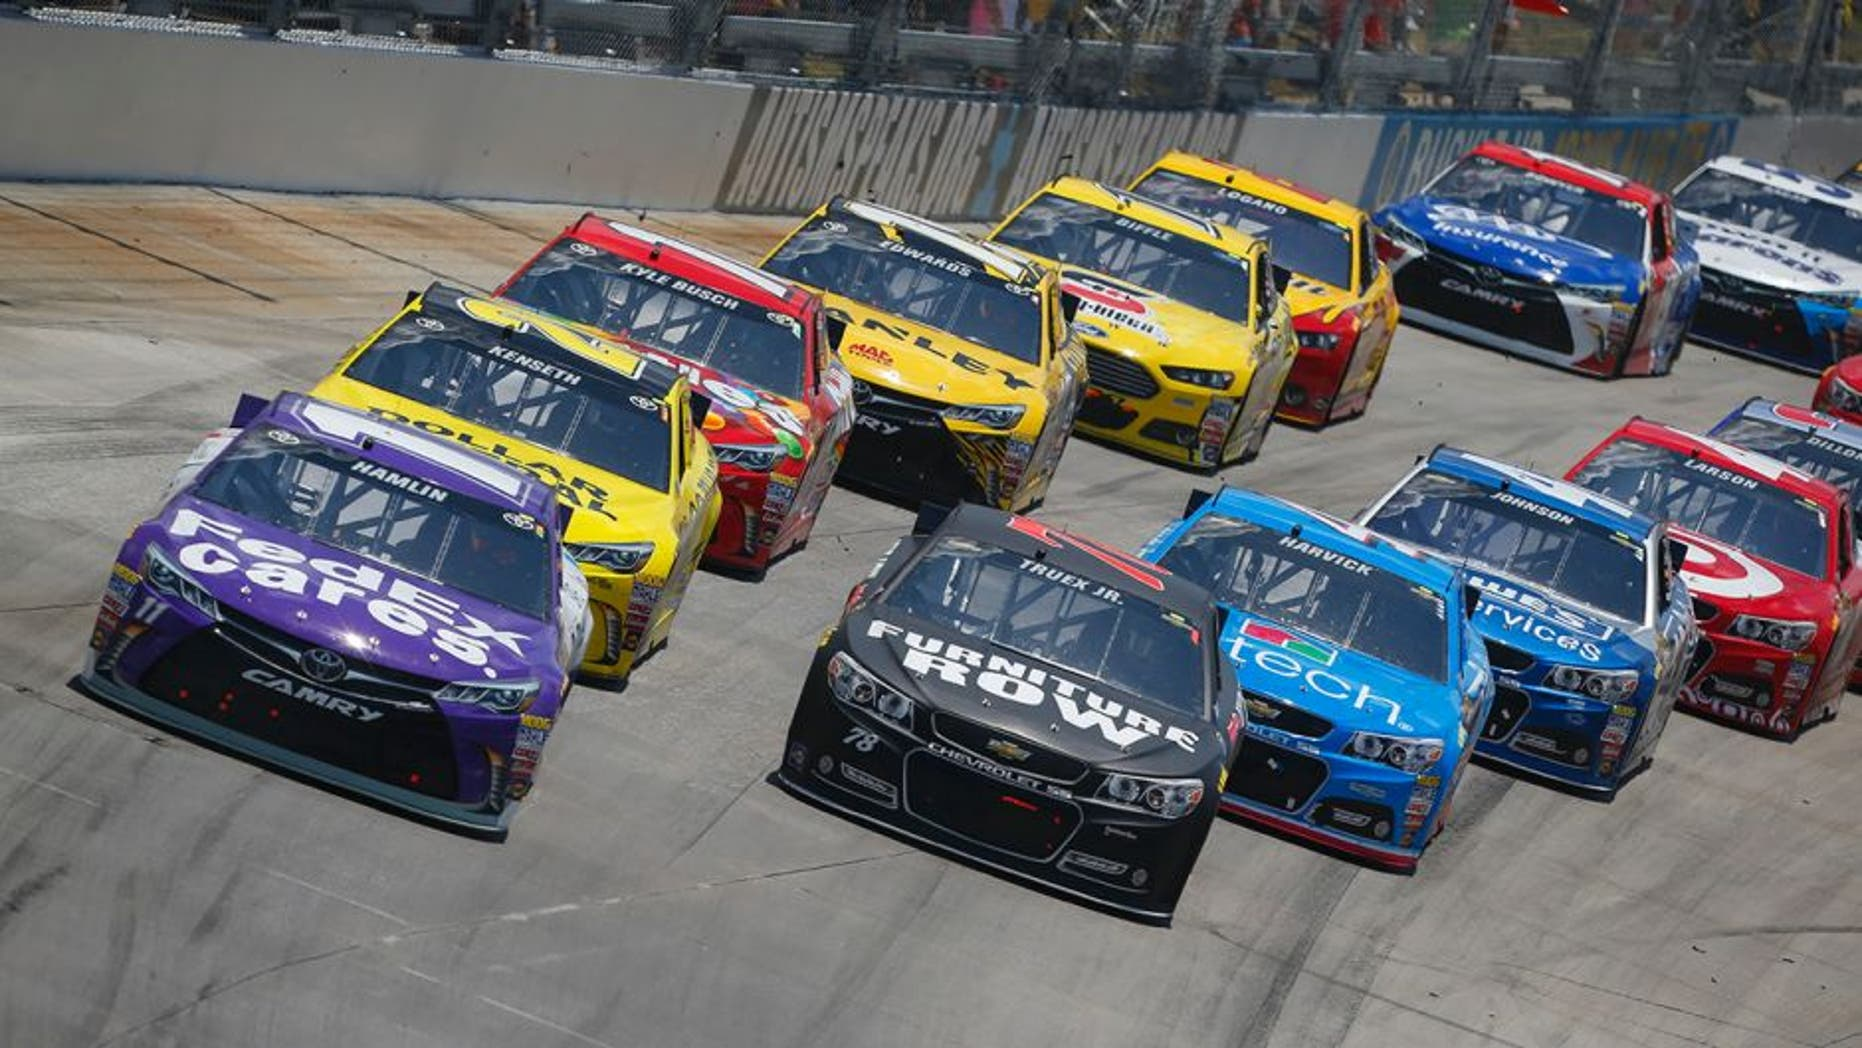 Denny Hamlin, driver of the #11 FedEx Cares Toyota, leads a pack of cars during the NASCAR Sprint Cup Series FedEx 400 Benefiting Autism Speaks at Dover International Speedway on May 31, 2015 in Dover, Delaware.